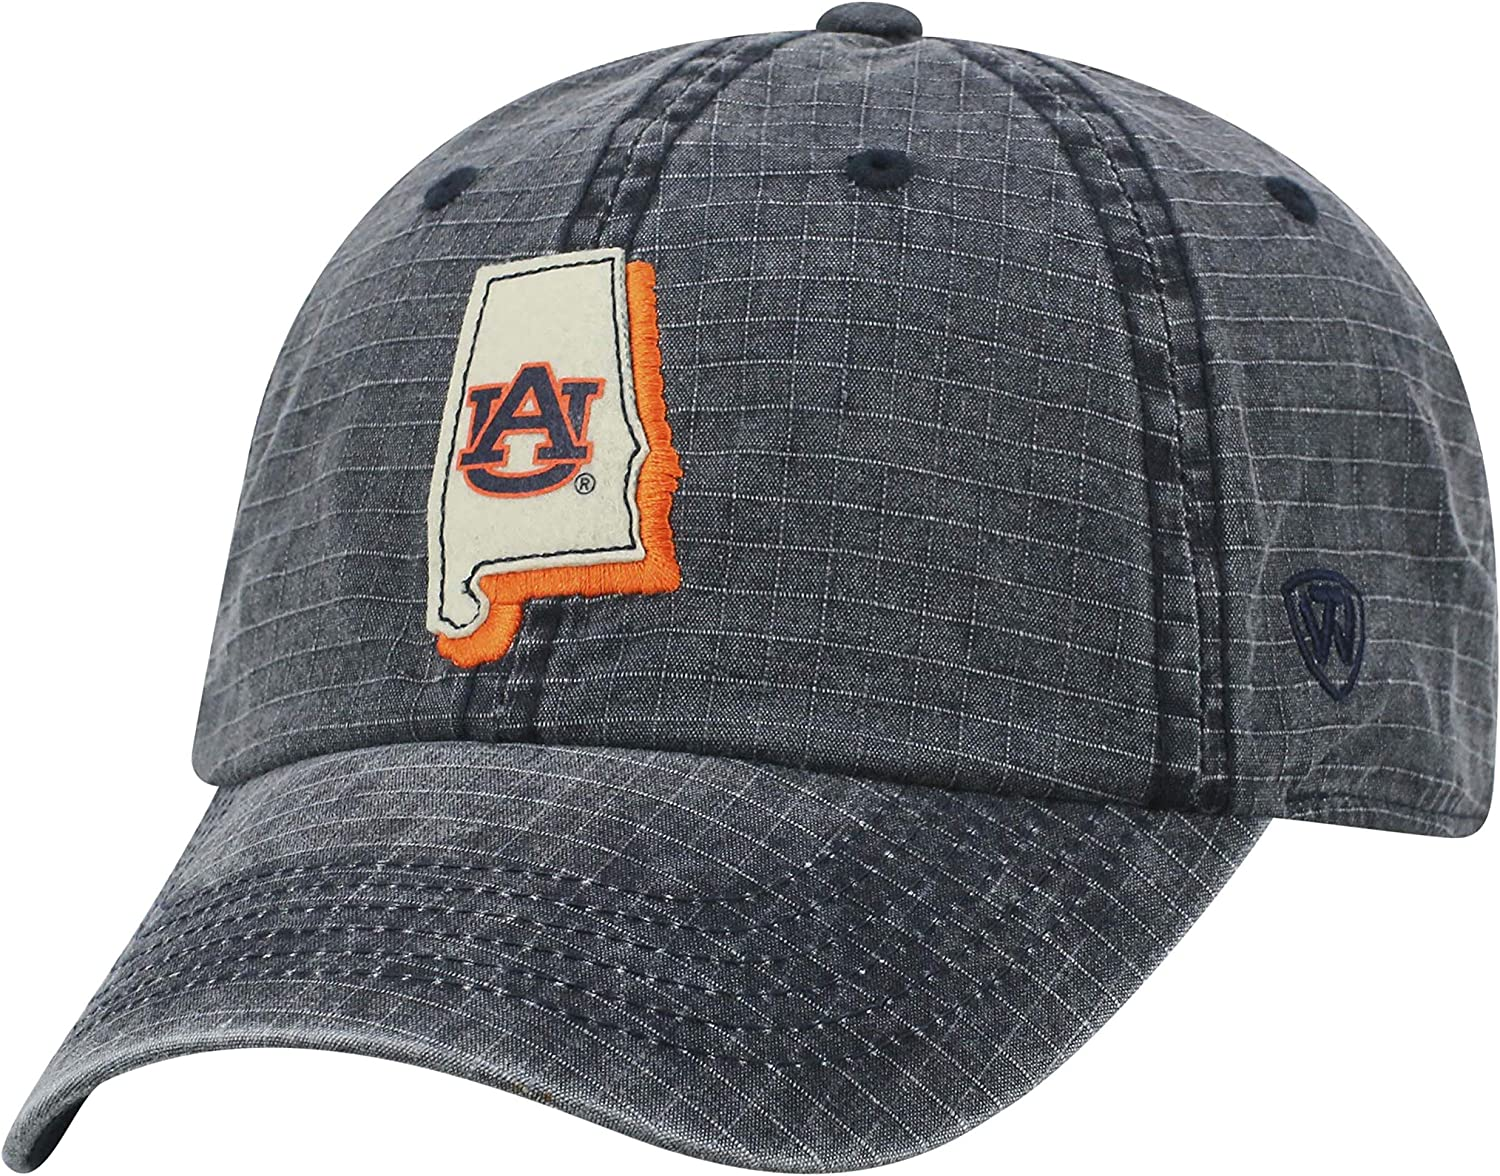 Illinois Fighting Illini Triple Conference Hat Adjustable Cap Top Of The World